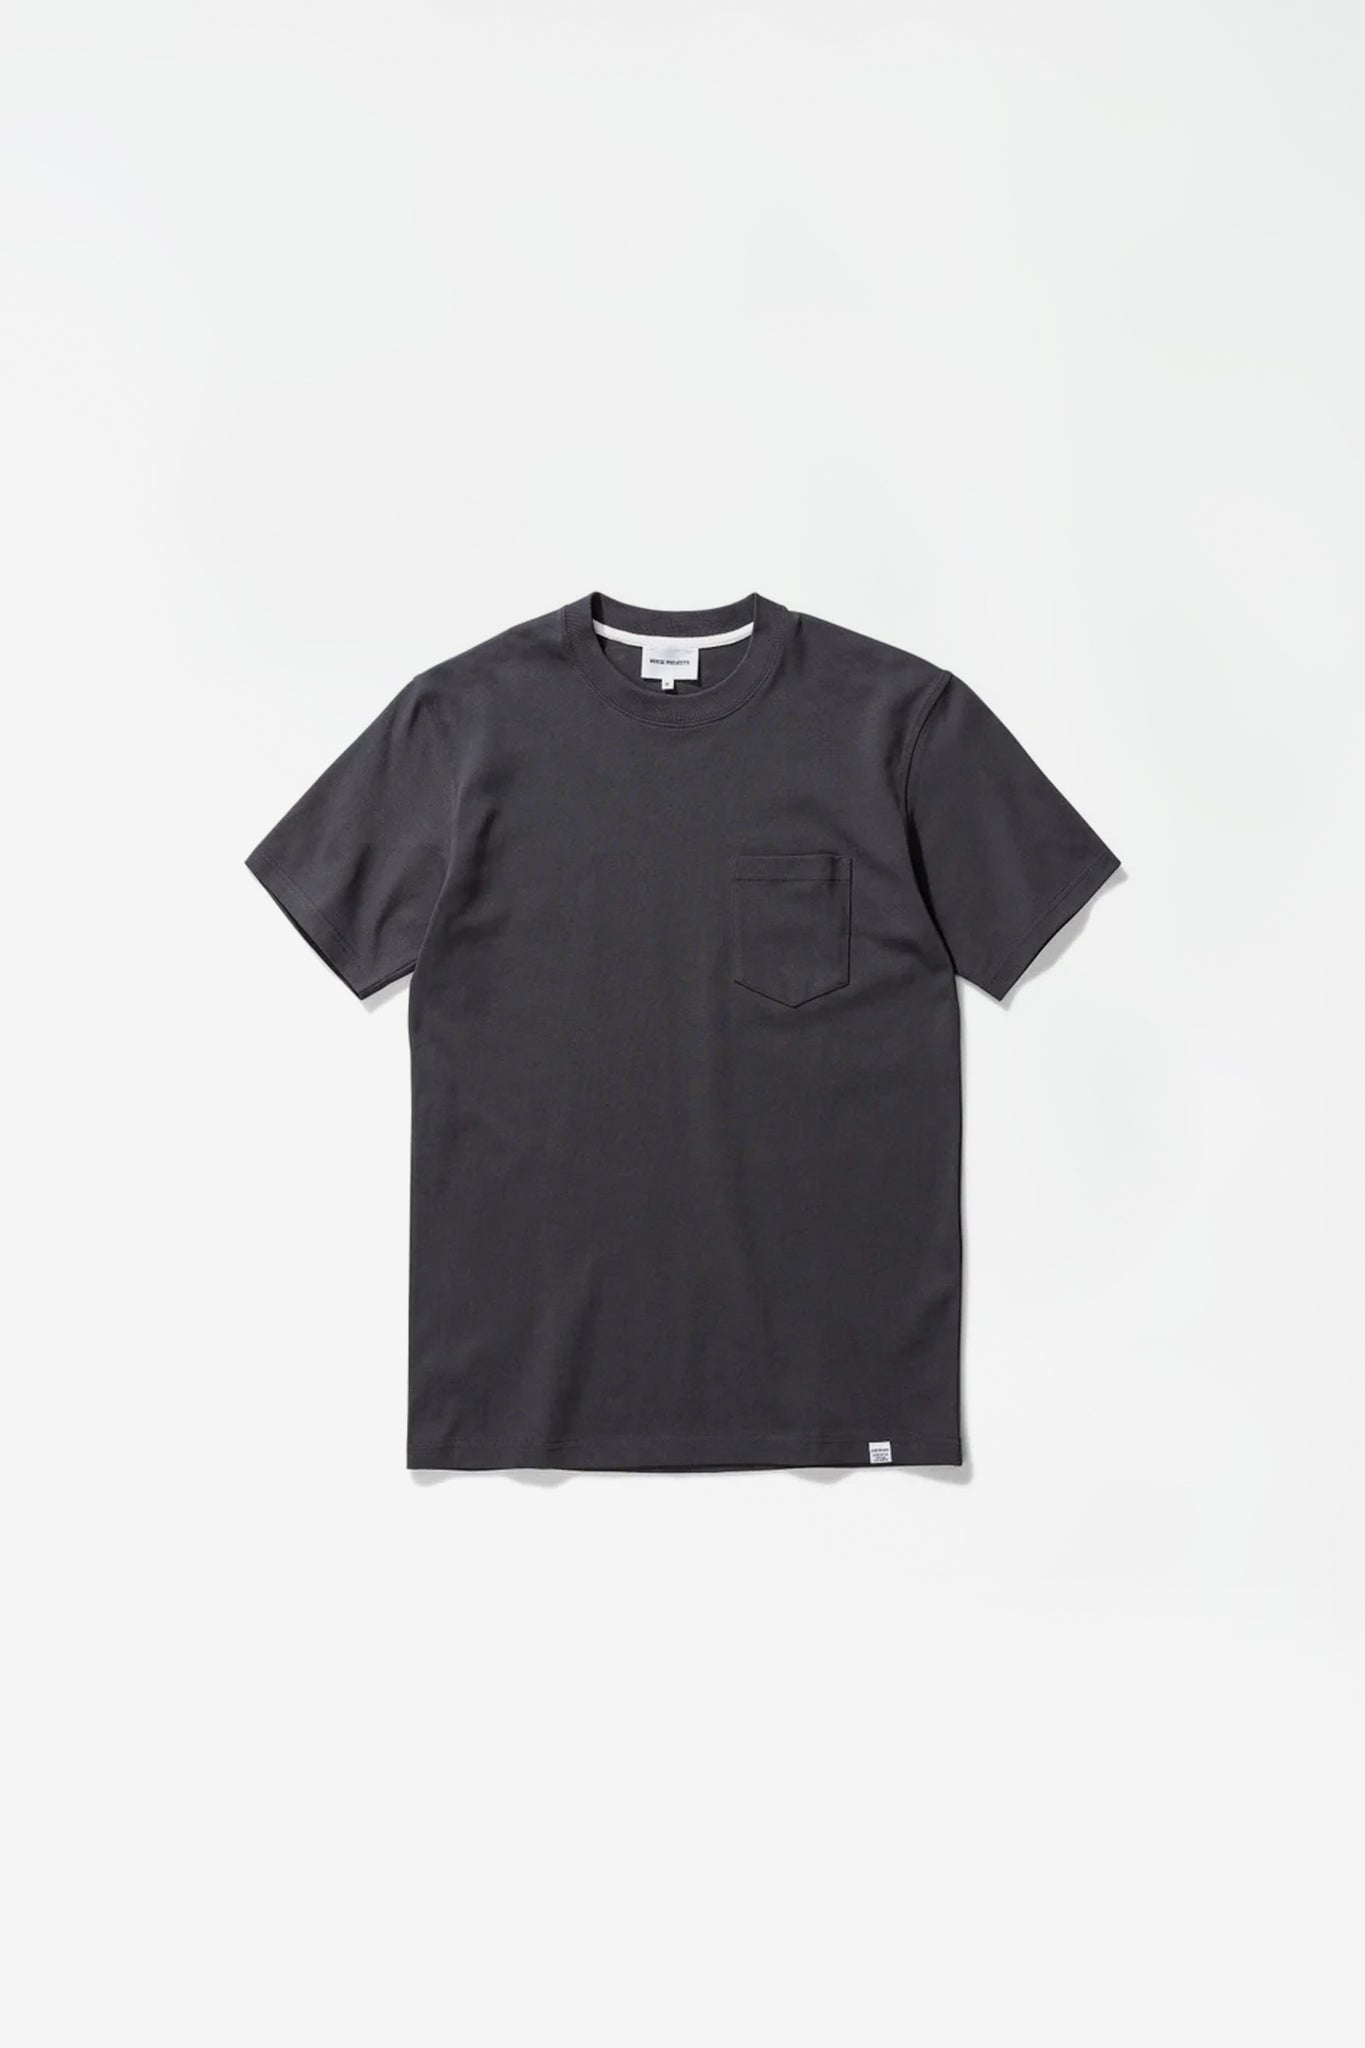 Johannes Pocket SS slate grey